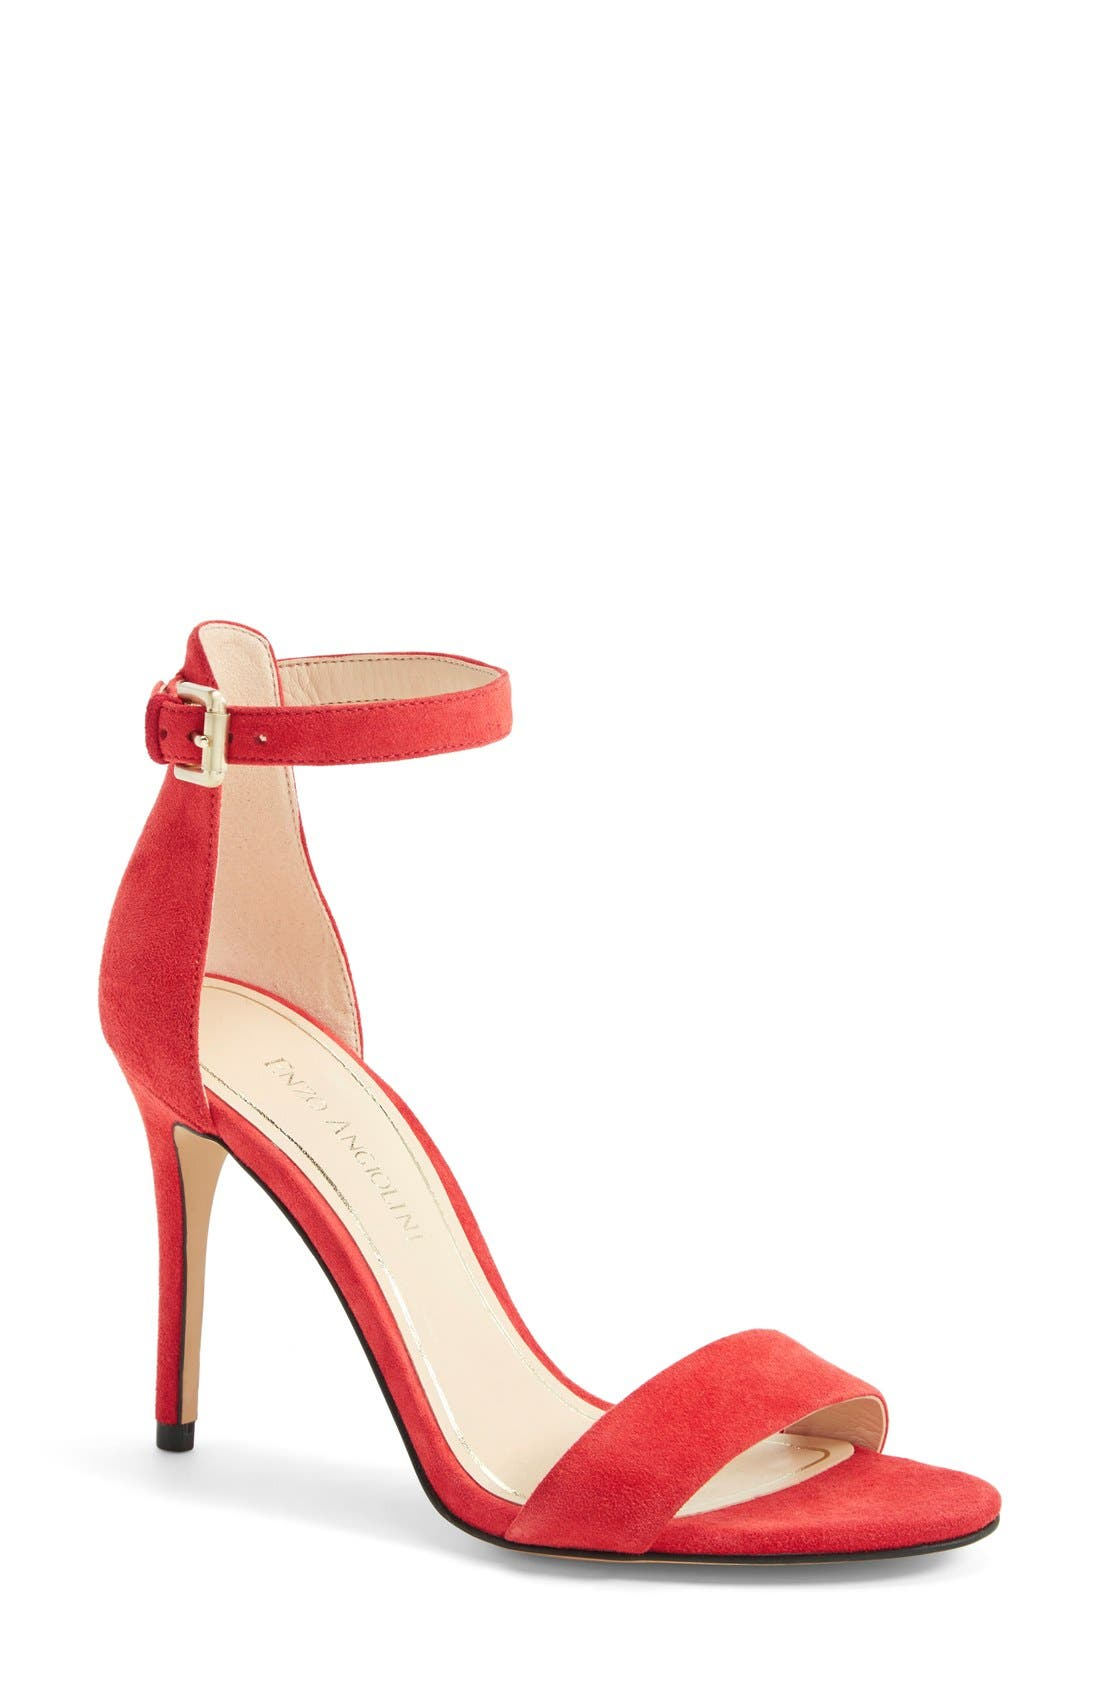 'Manna' Ankle Strap Sandal,                             Main thumbnail 1, color,                             Cherry Suede